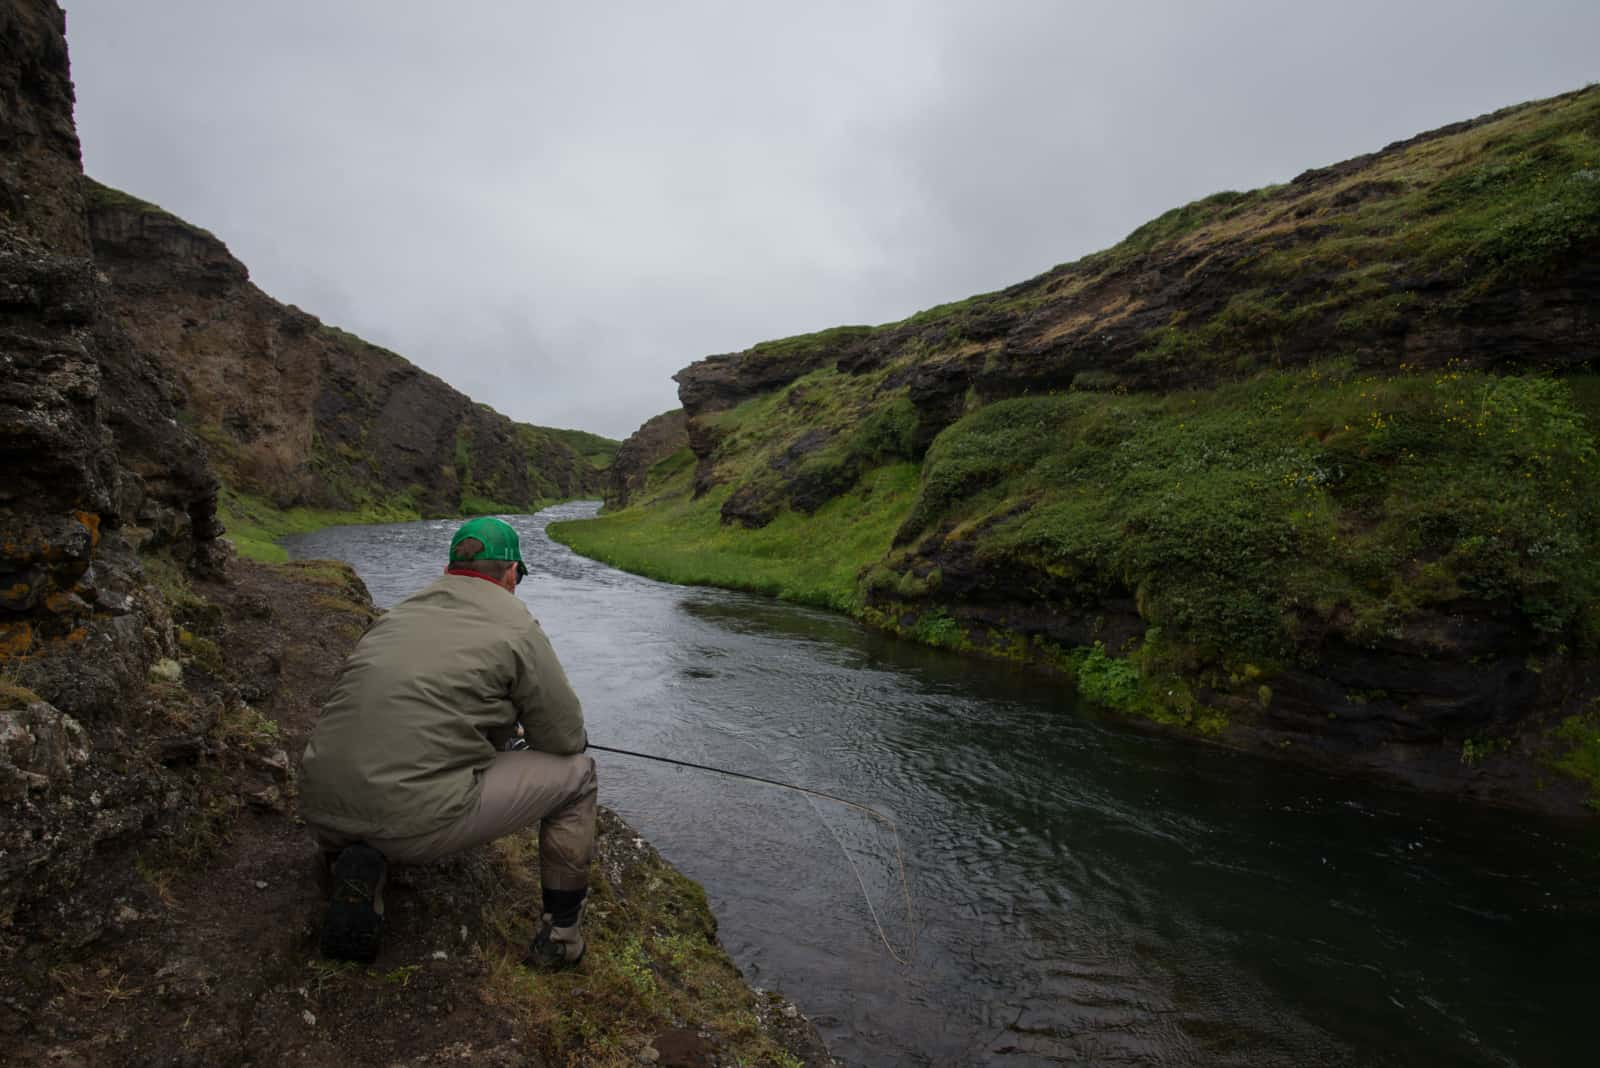 swinging-flies-for-salmon-in-iceland